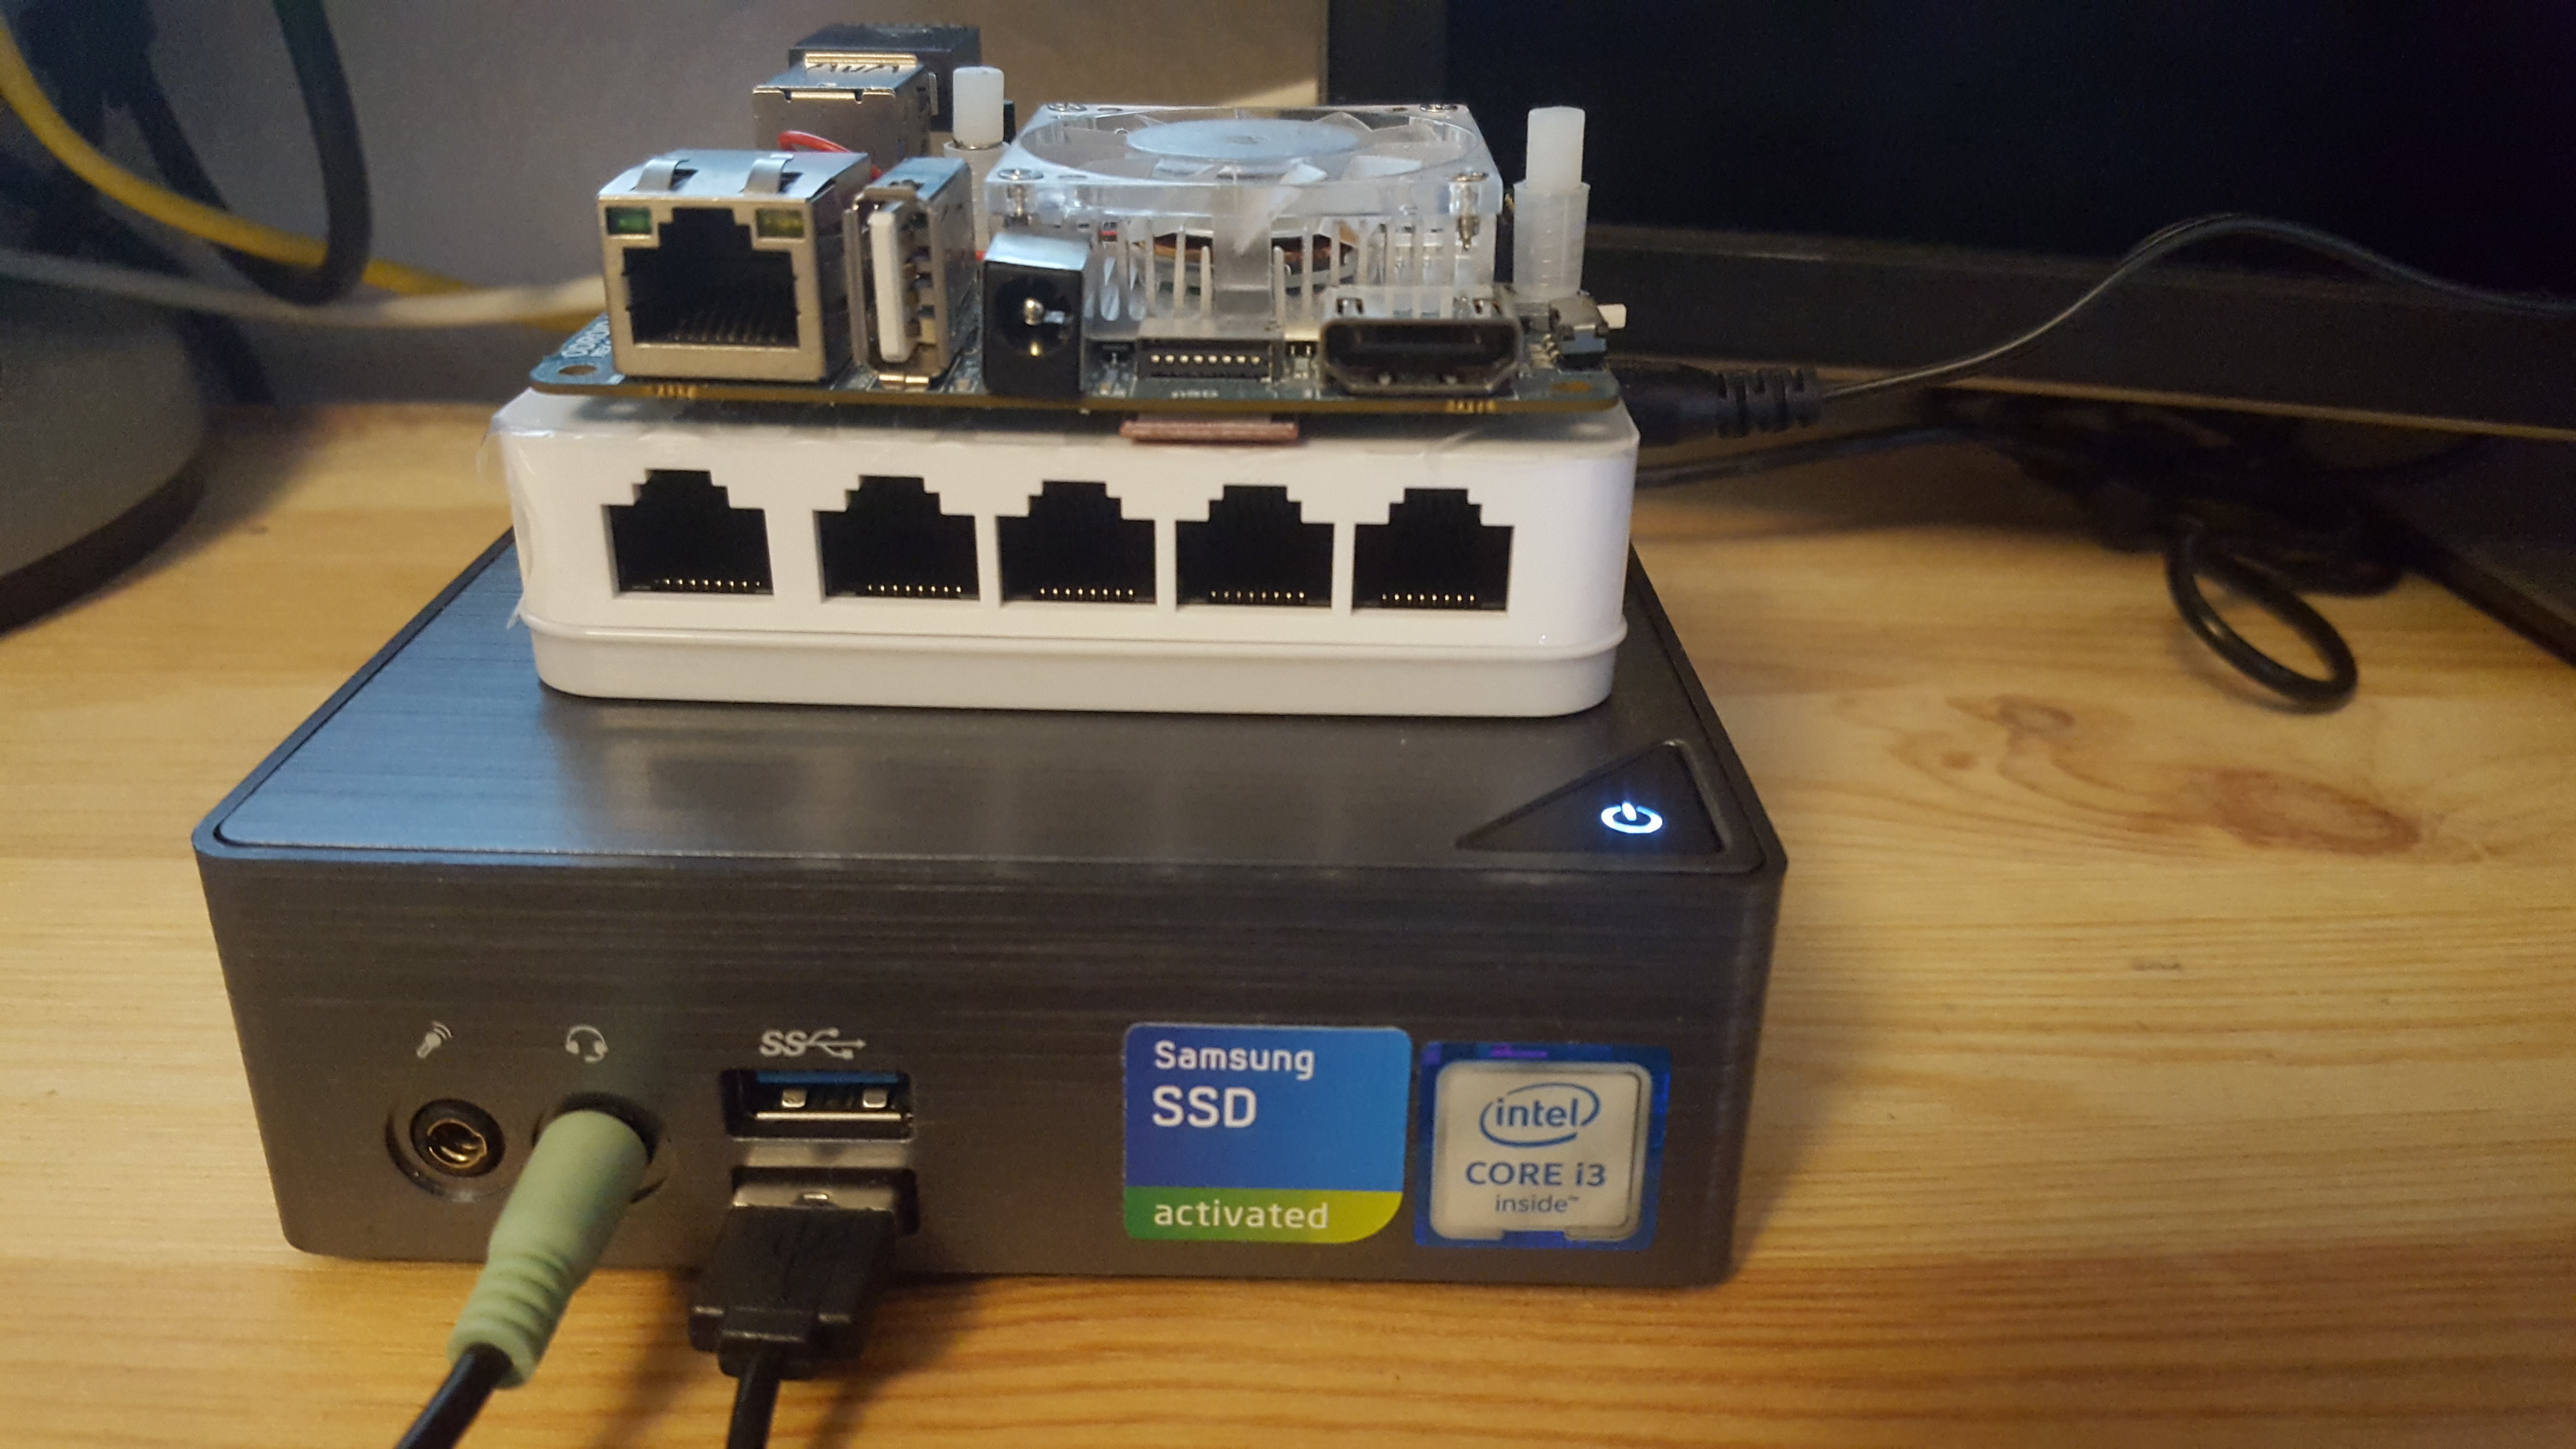 dev environment for fast development with odroid xu4, mini PC and switch, without virtualization